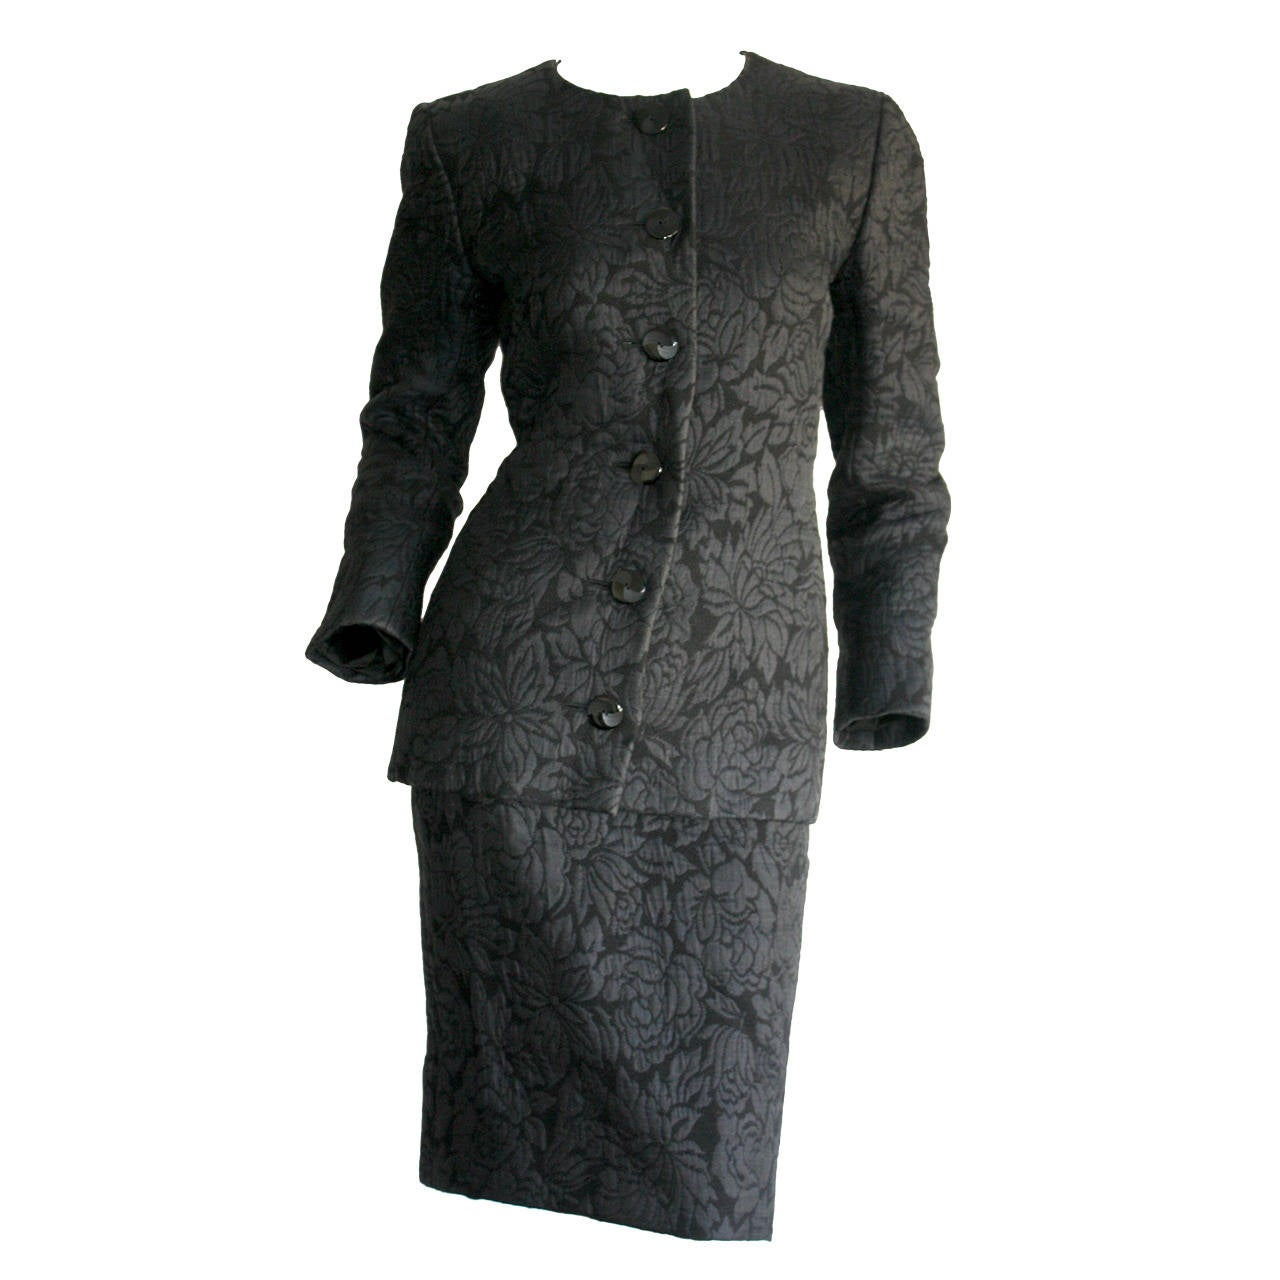 bd46bab26 Vintage Yves Saint Laurent Haute Couture Numbered Skirt Suit - Stunning!